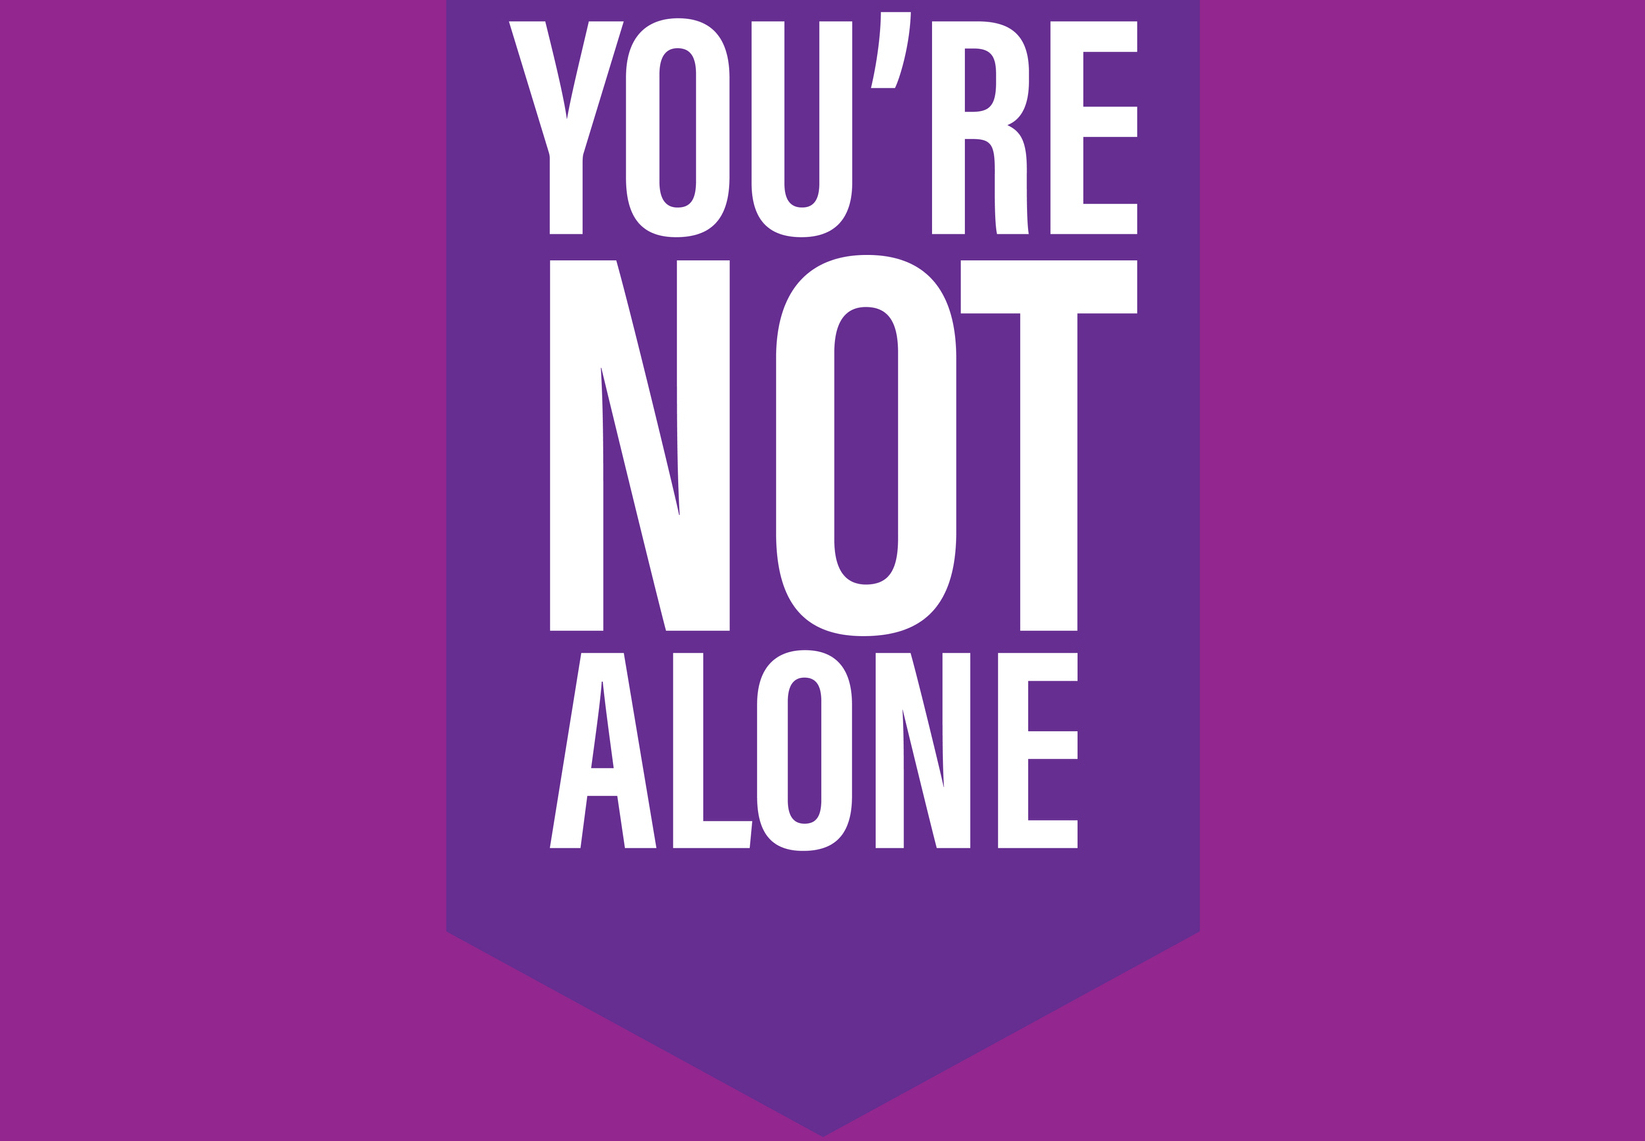 Suicide Prevention Month design concept featuring purple backgrounds and white text